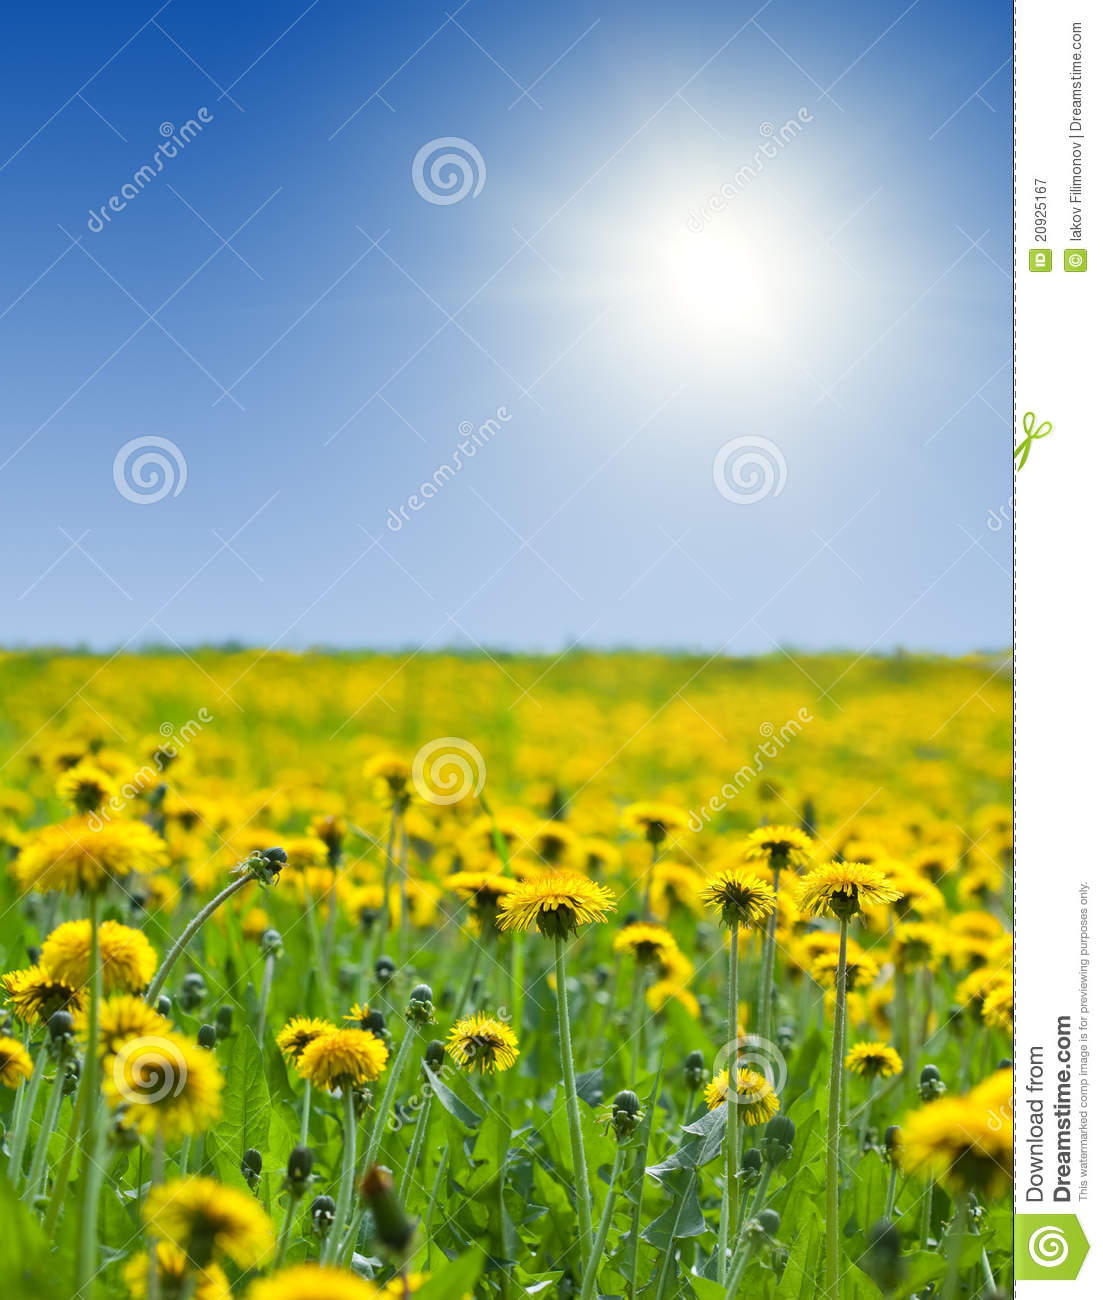 Yellow Dandelions Under Bly Sky Stock Image